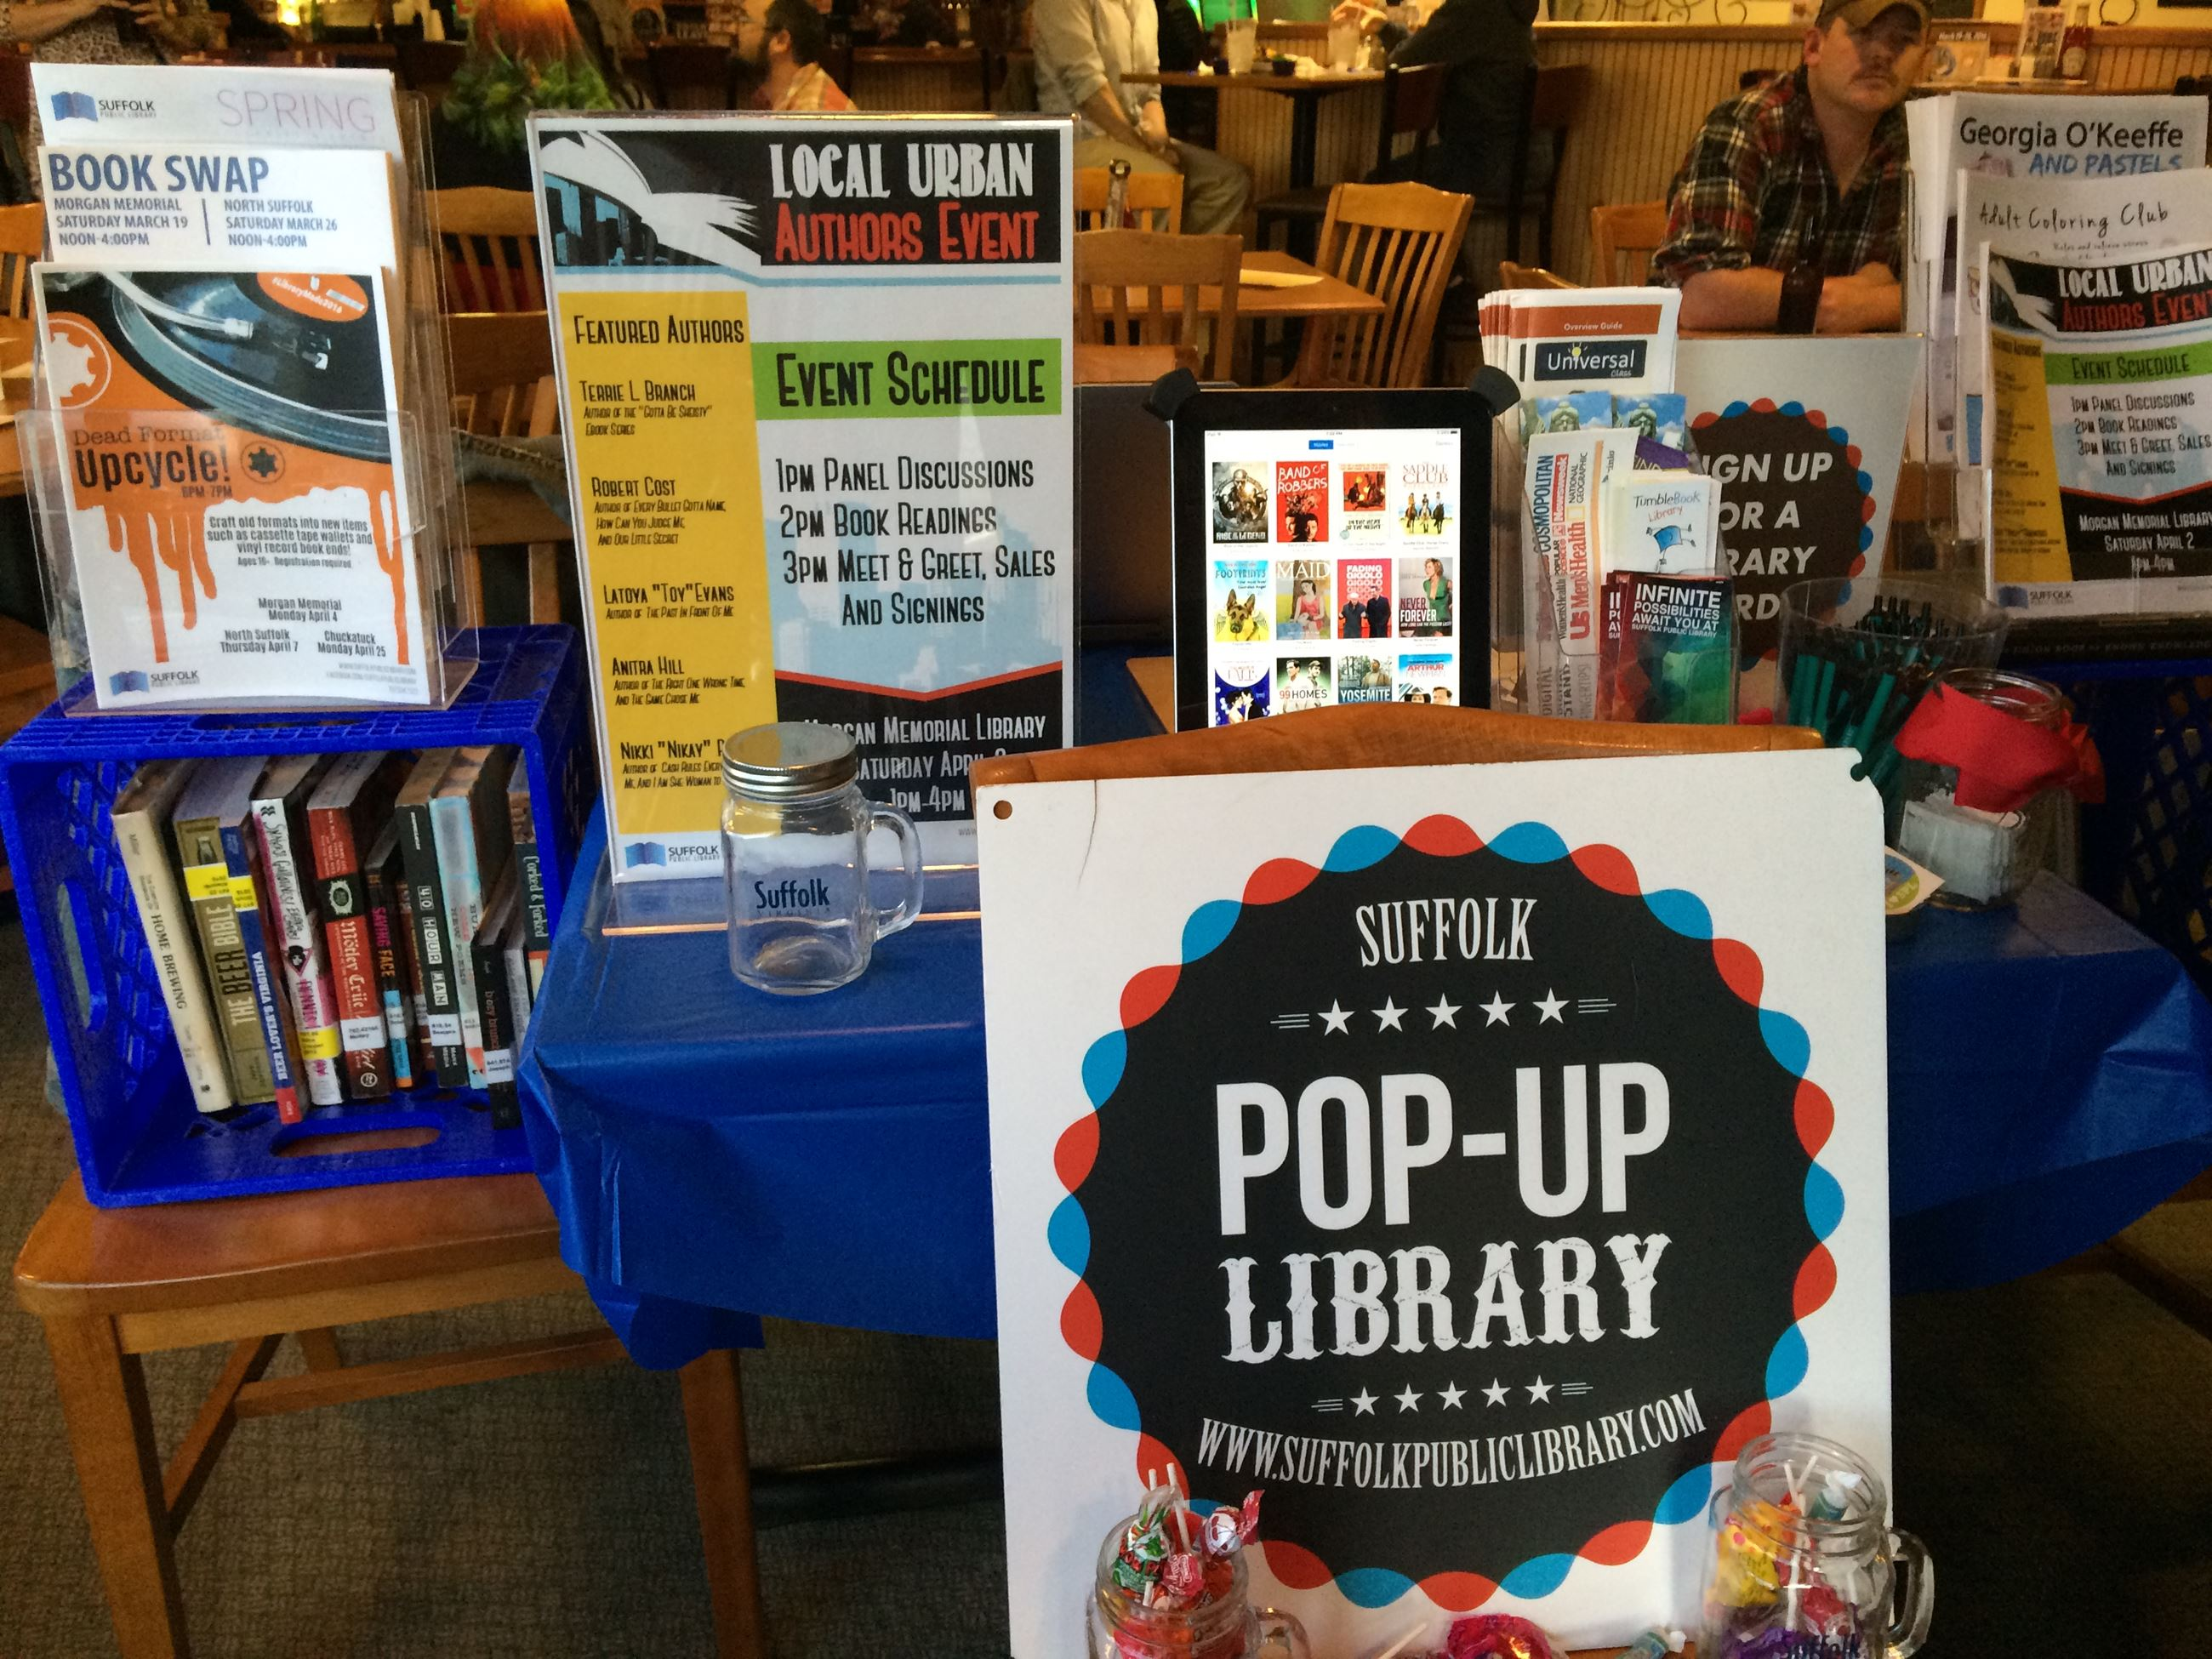 Pop Up Library table with signage and books